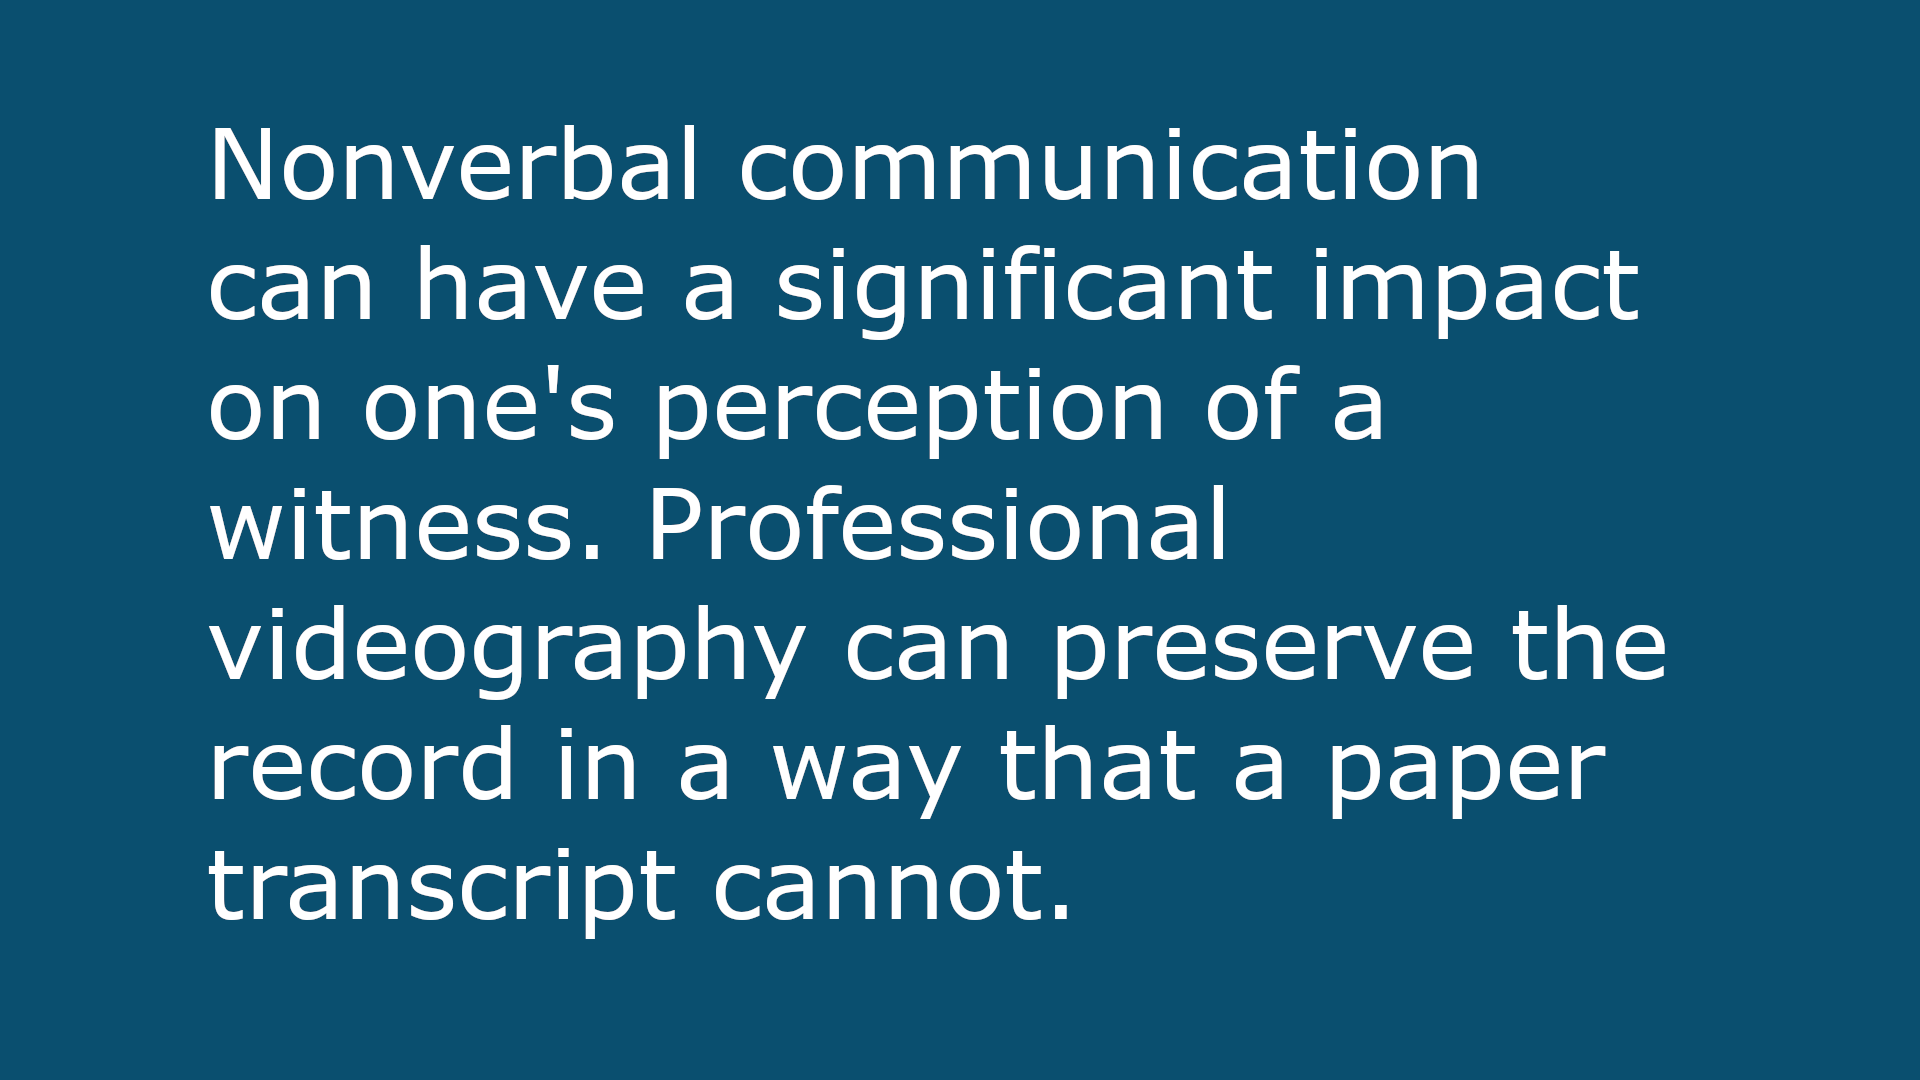 text-based image that reads: Nonverbal communication can have a significant impact on one's perception of a witness. Professional videography can preserve the record in a way that a paper transcript cannot.